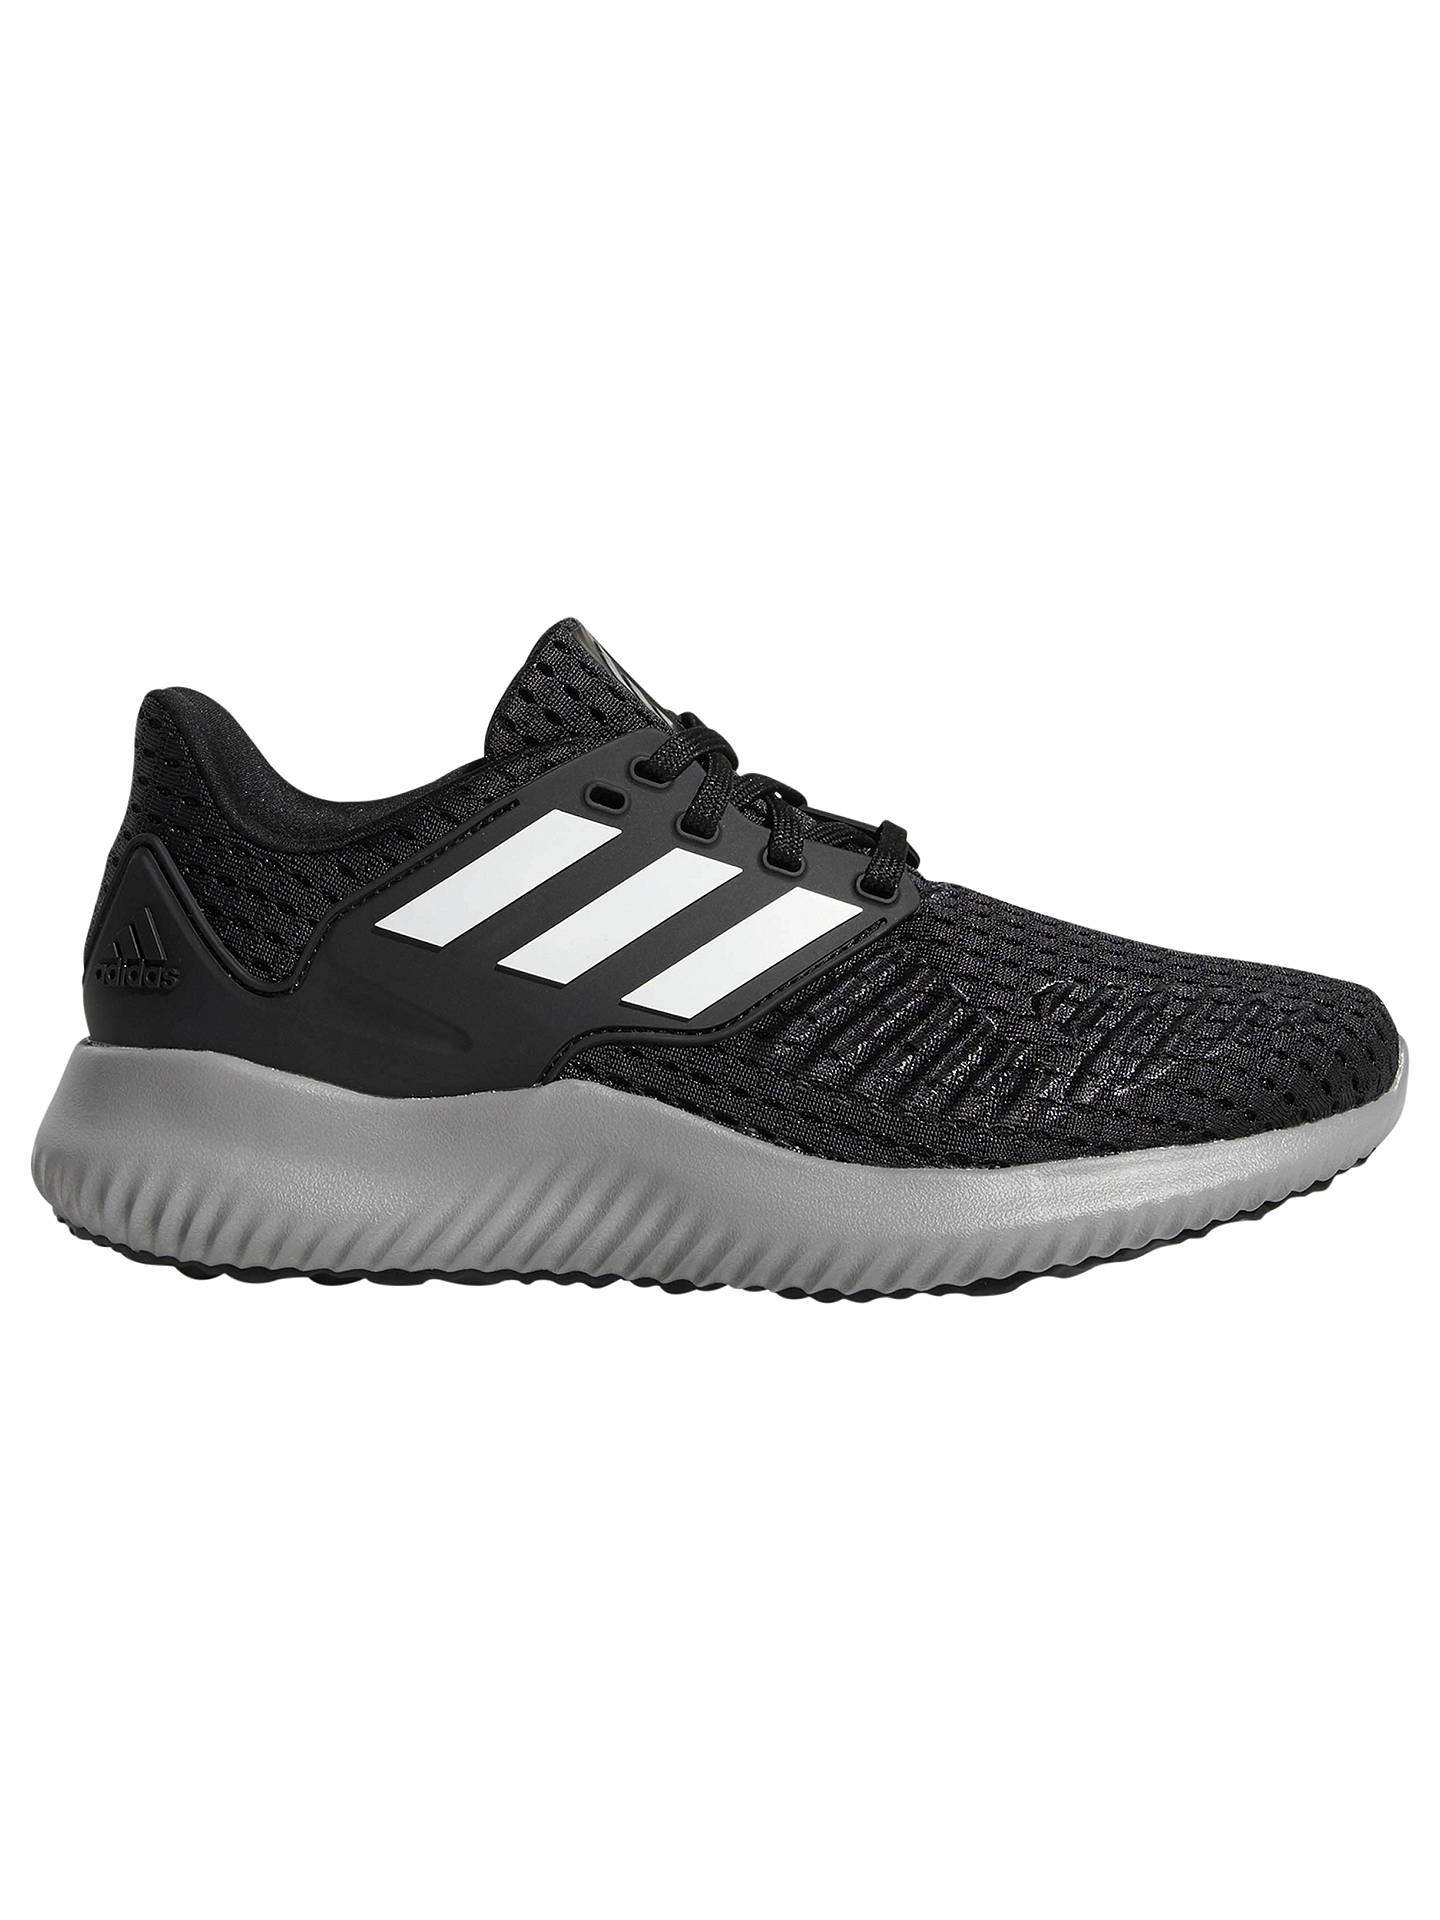 b1e14a7d01420 Buy adidas Alphabounce RC 2.0 Women s Running Shoes